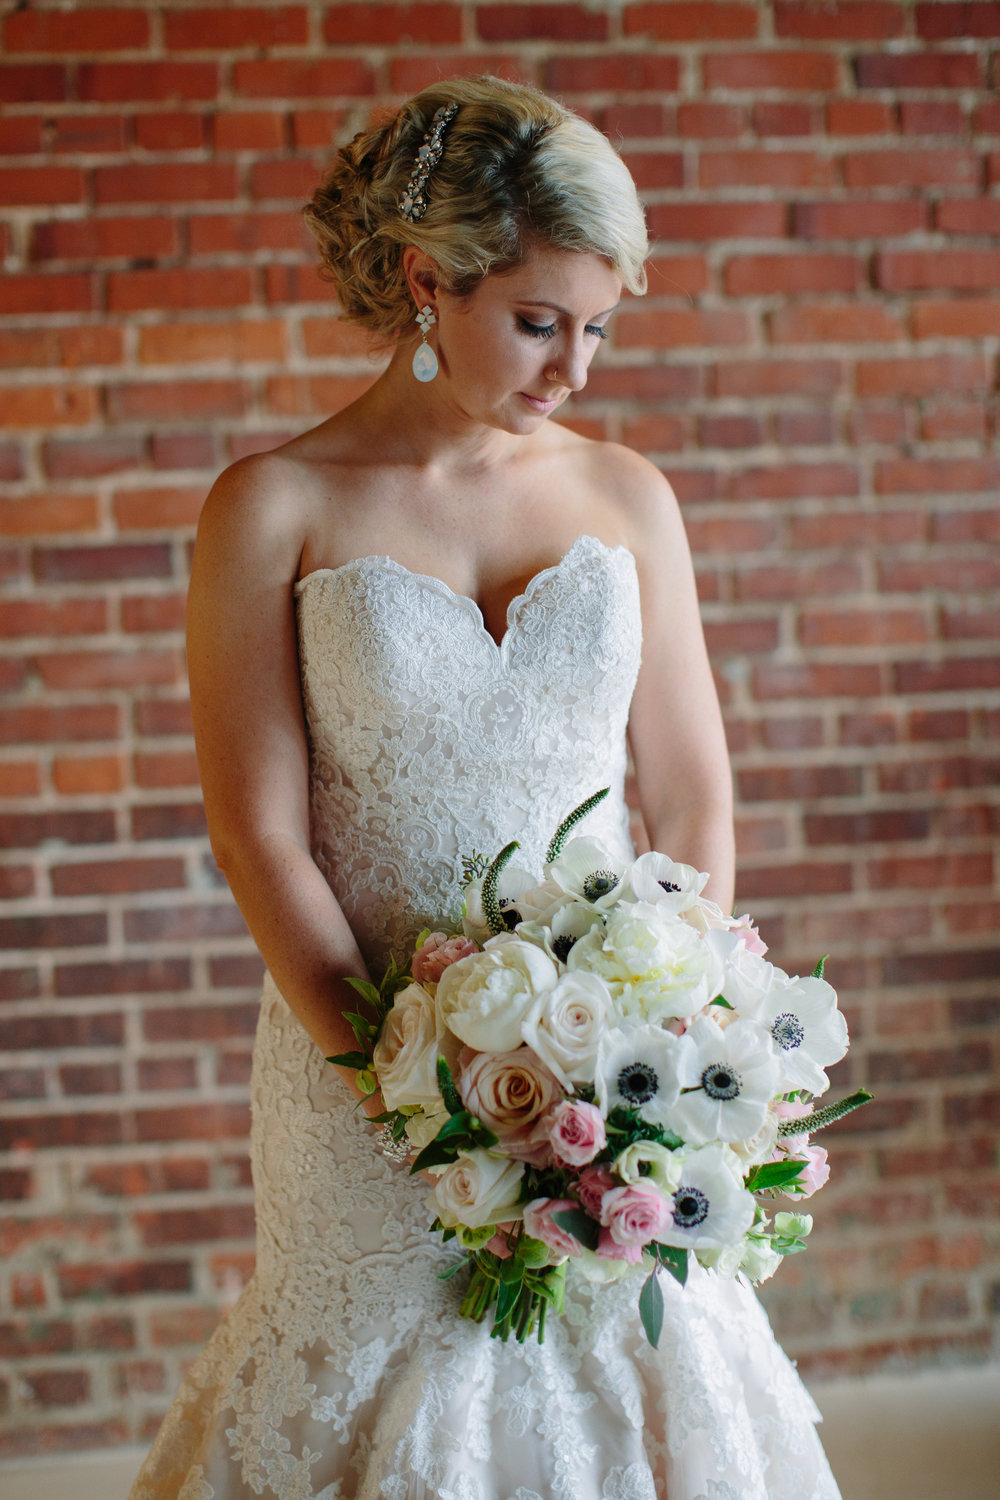 The Ceremony And Reception Were Held At Cotton Room In Downtown Durham This Converted Factory Turned Event Venue With Tall Brick Walls